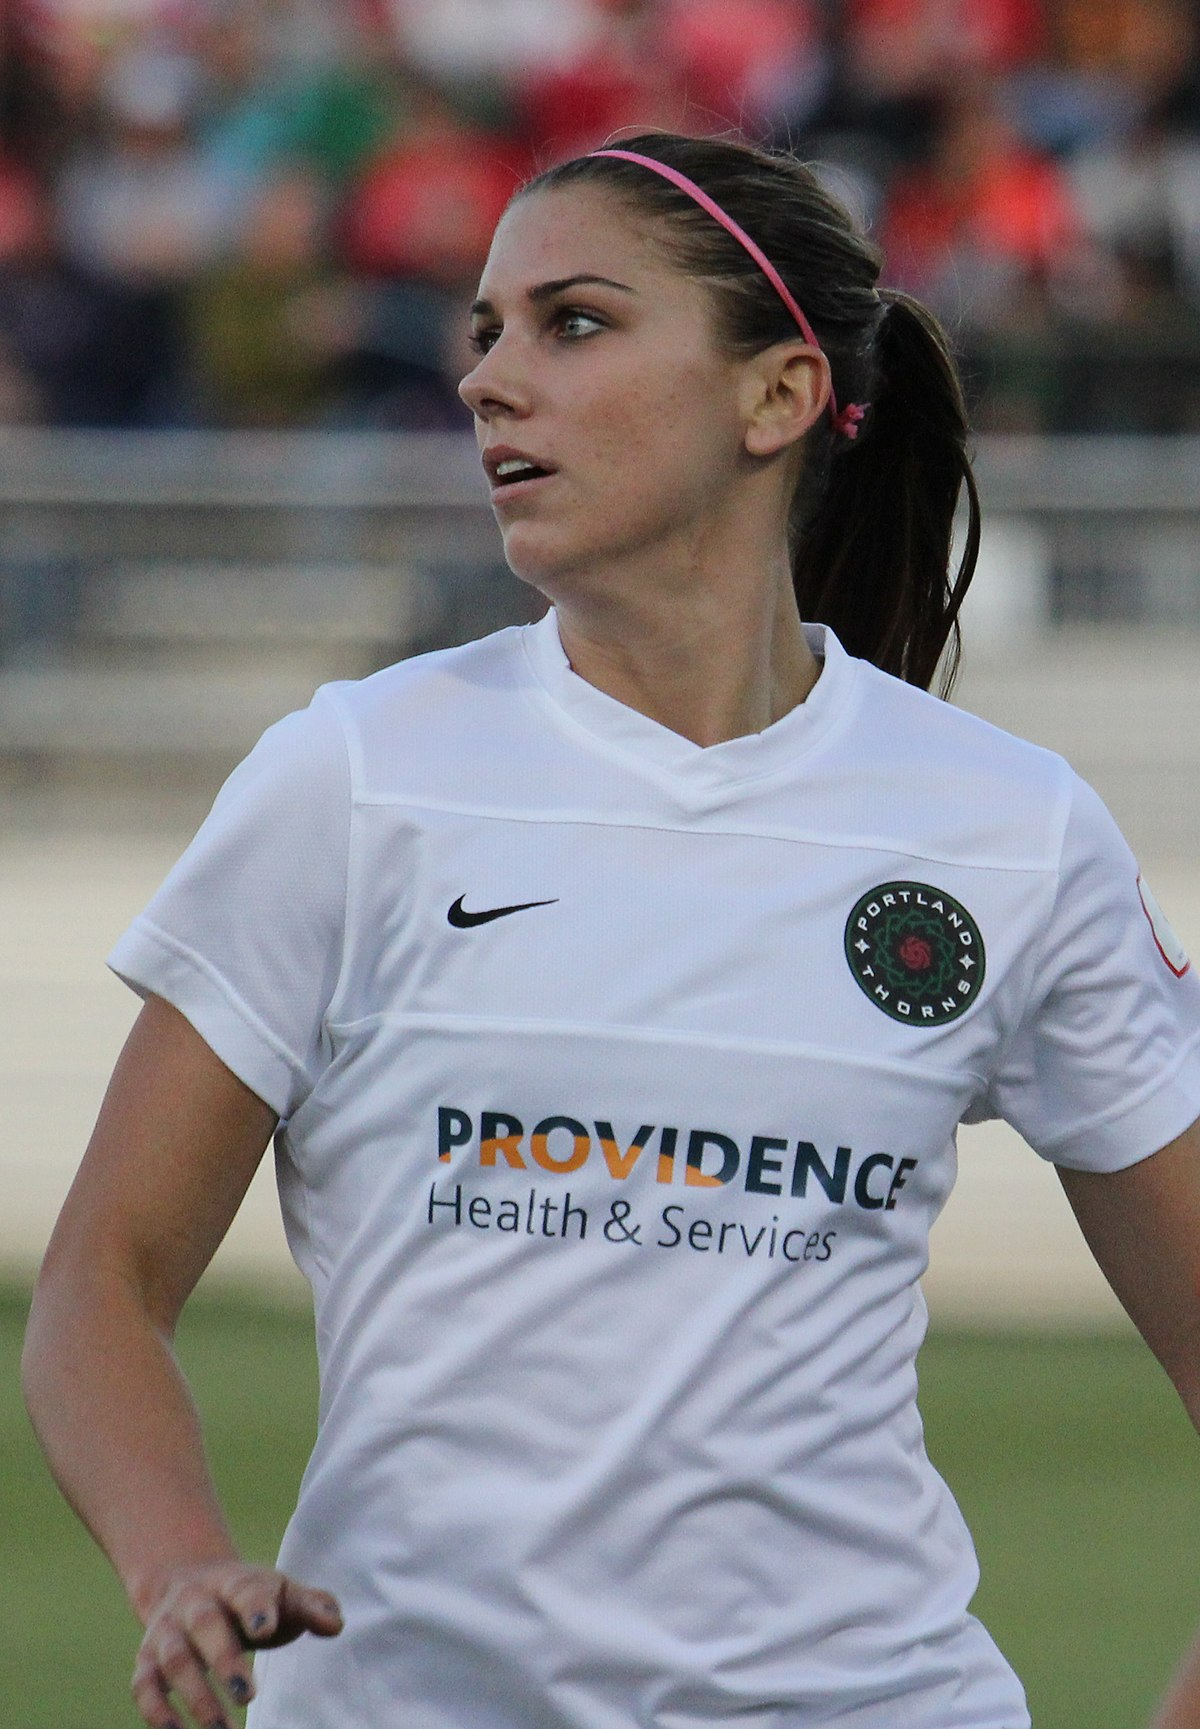 alex morgan - photo #49